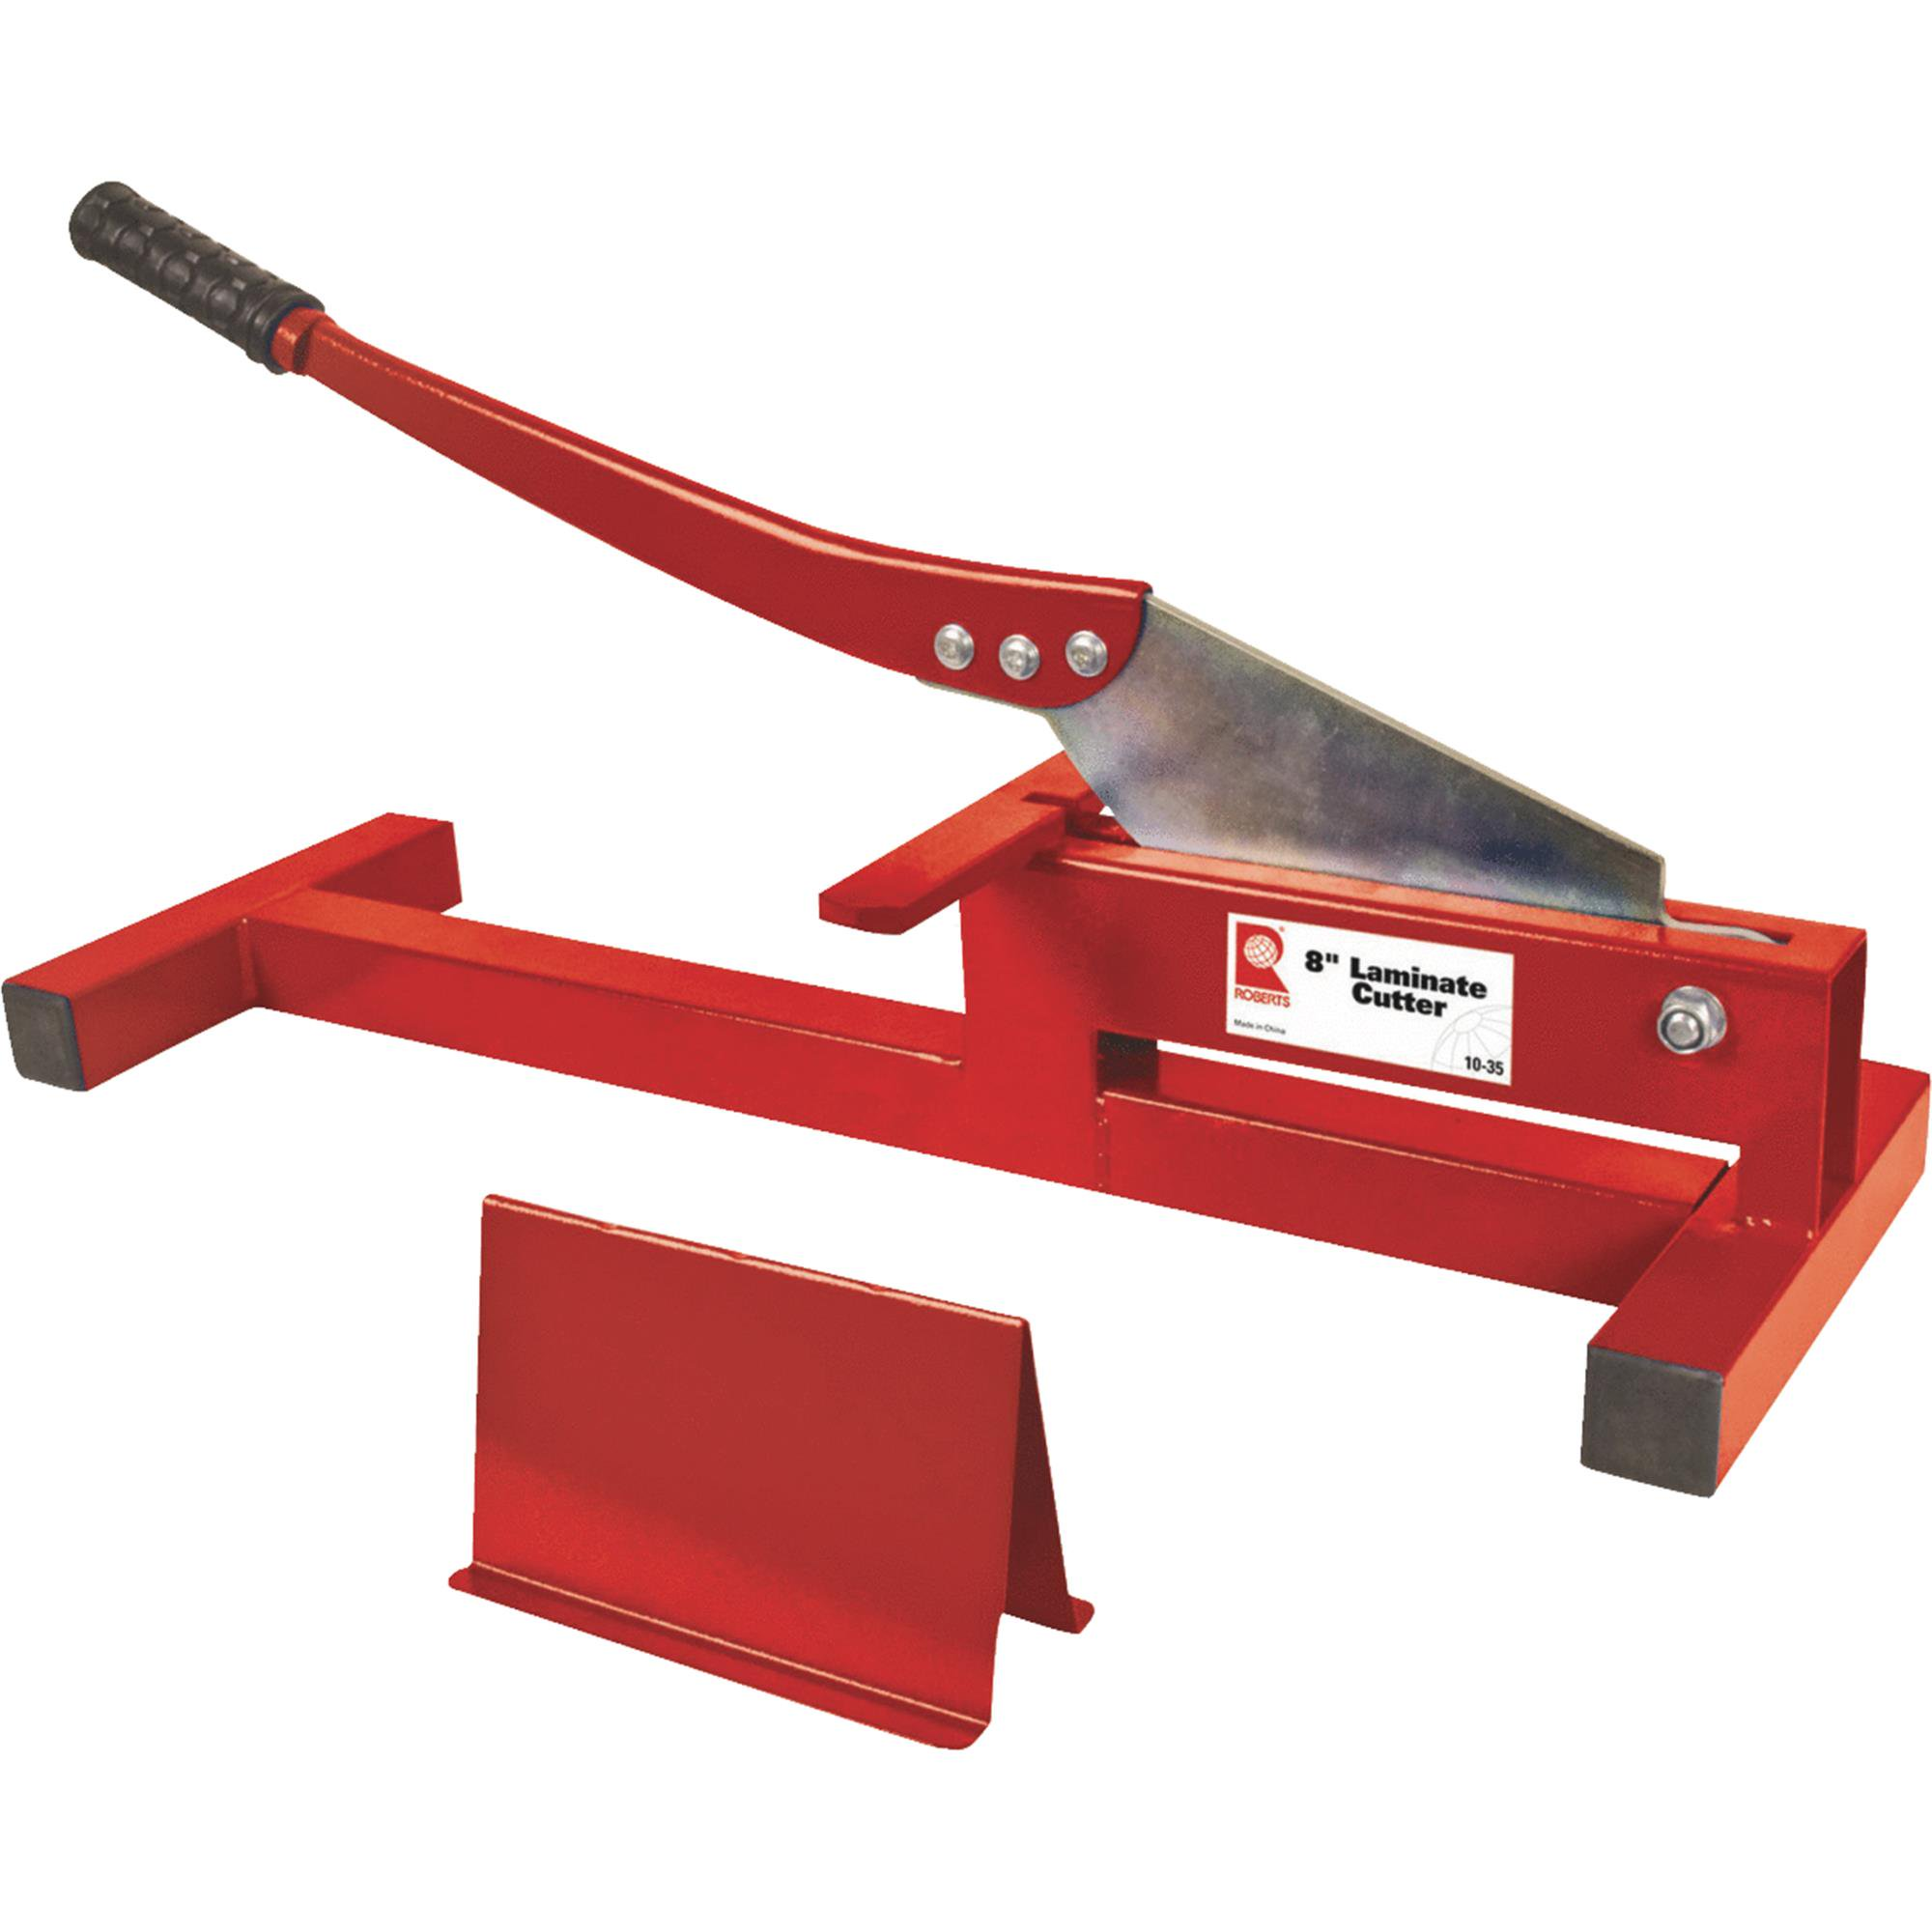 ROBERTS Laminate Cutter,8 In x 10mm Capacity 13058